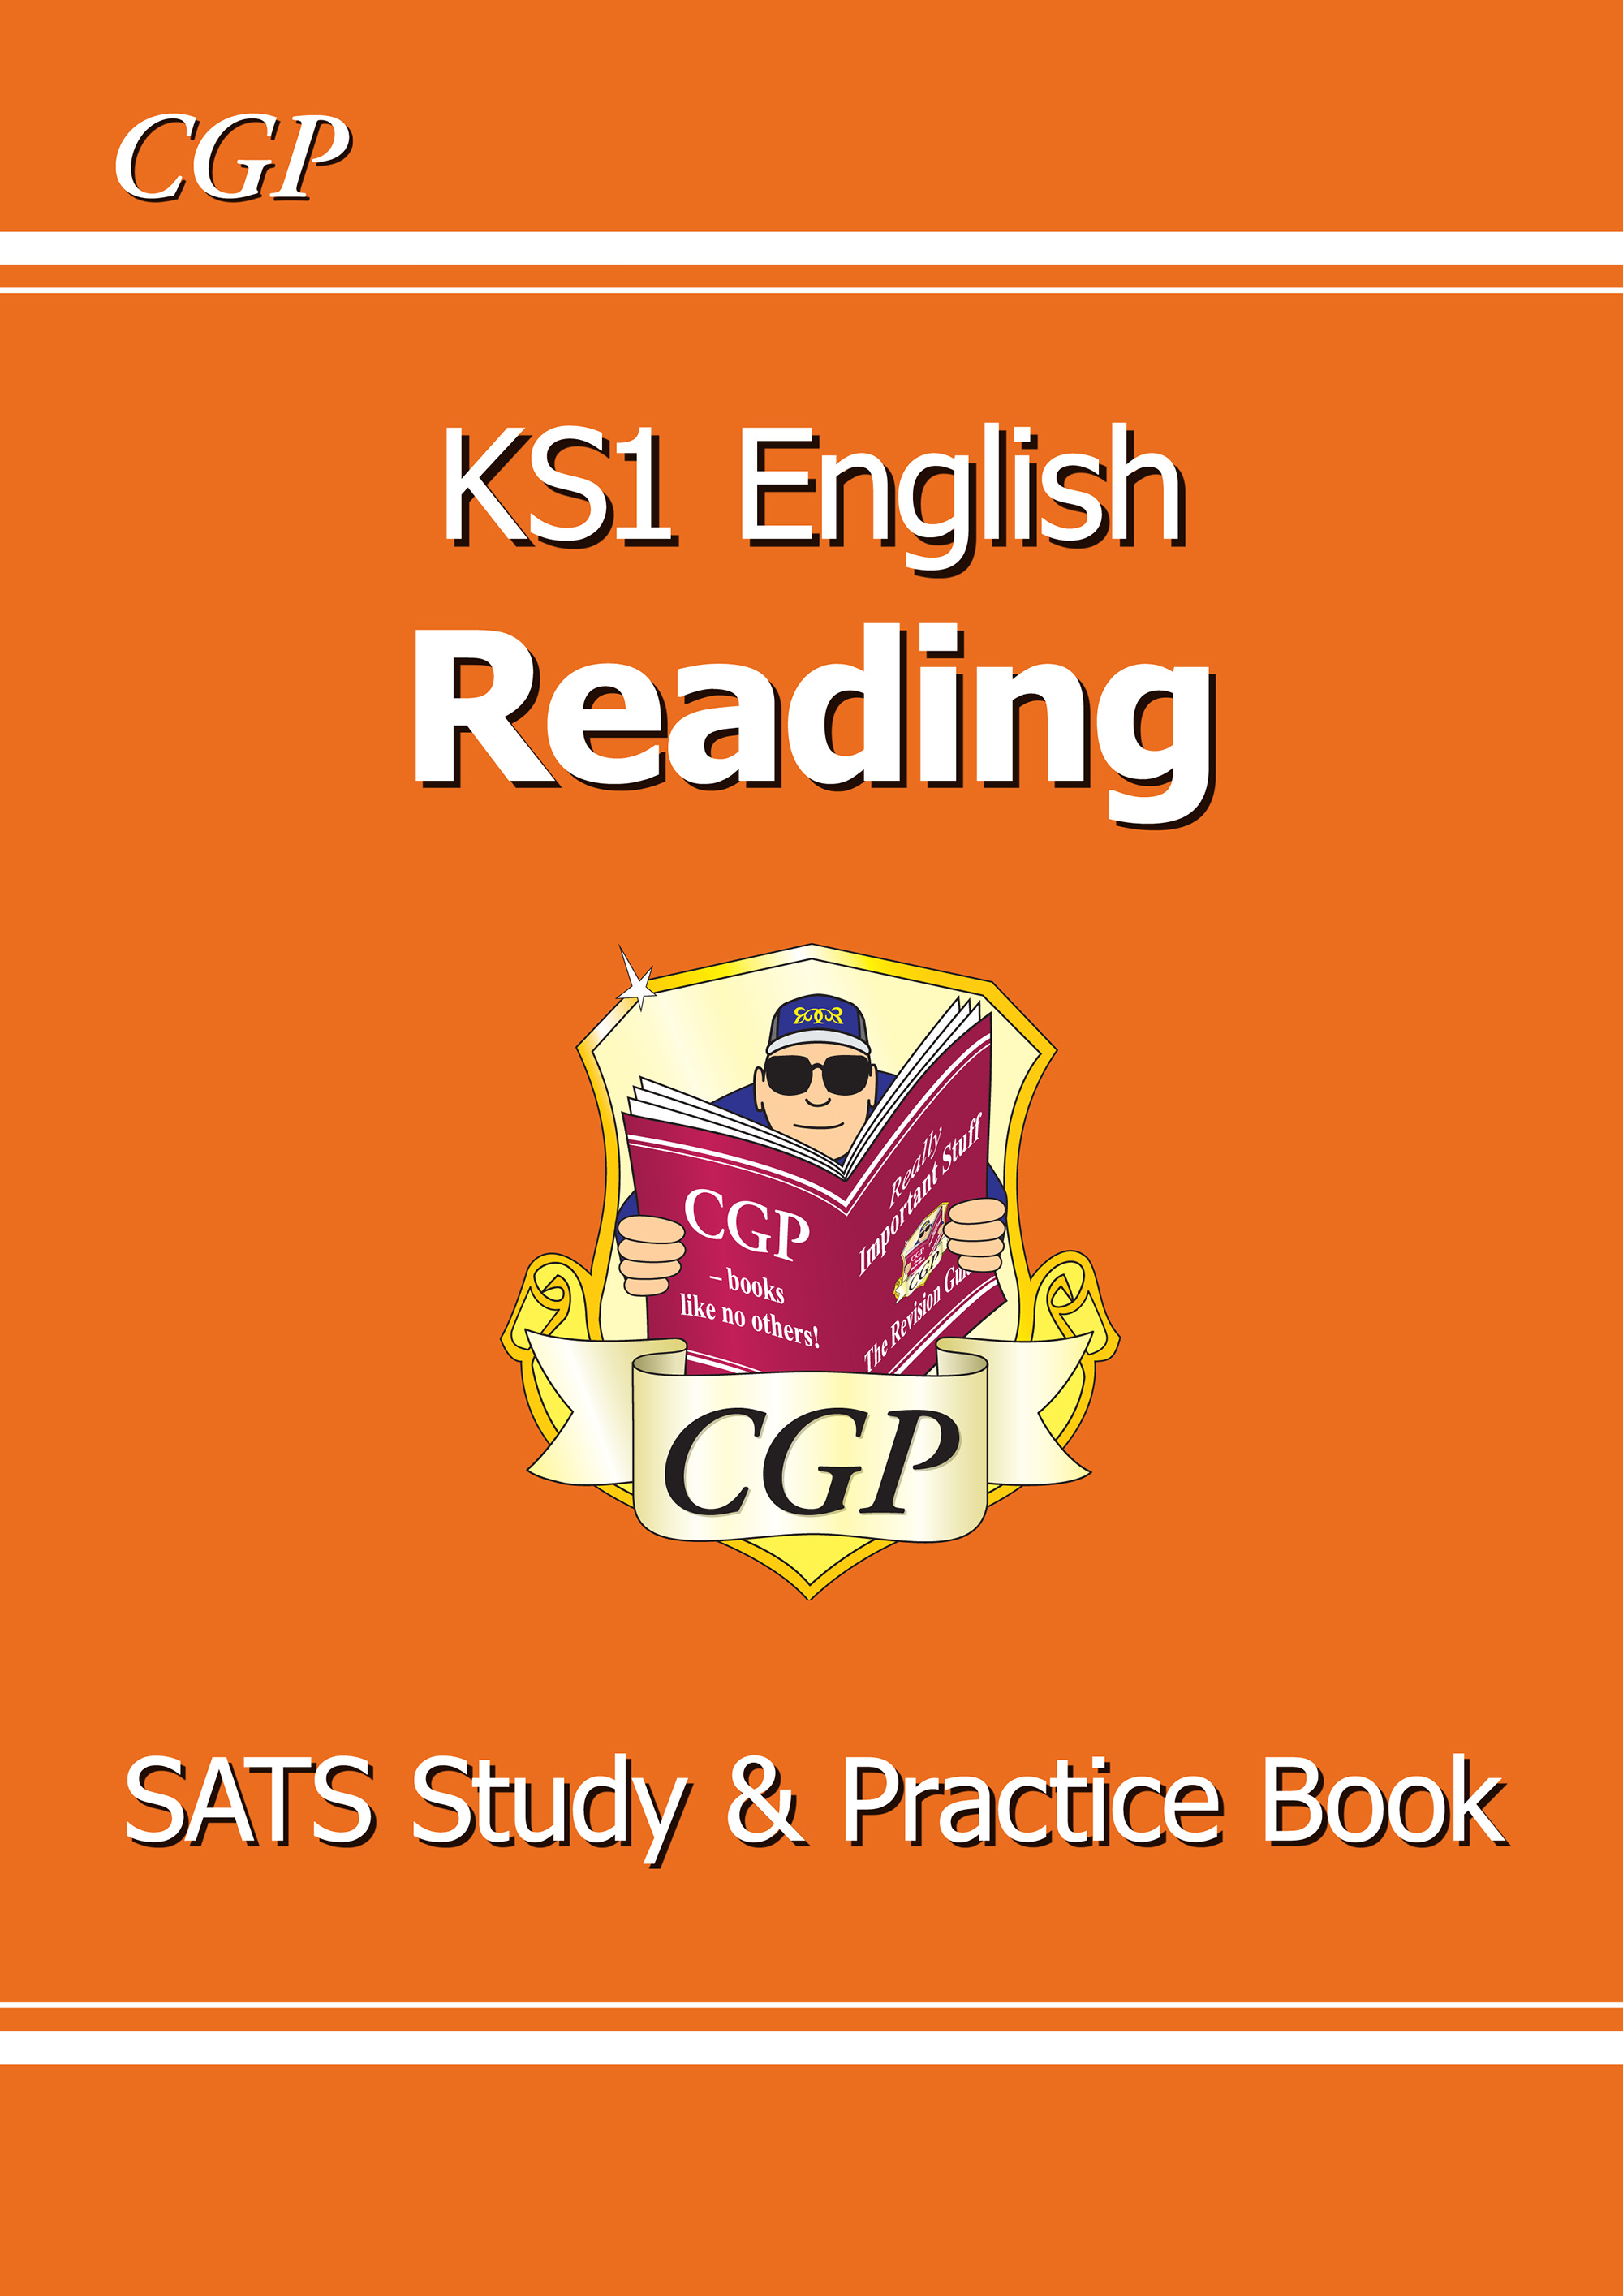 ERR11 - KS1 English Reading Study & Practice Book